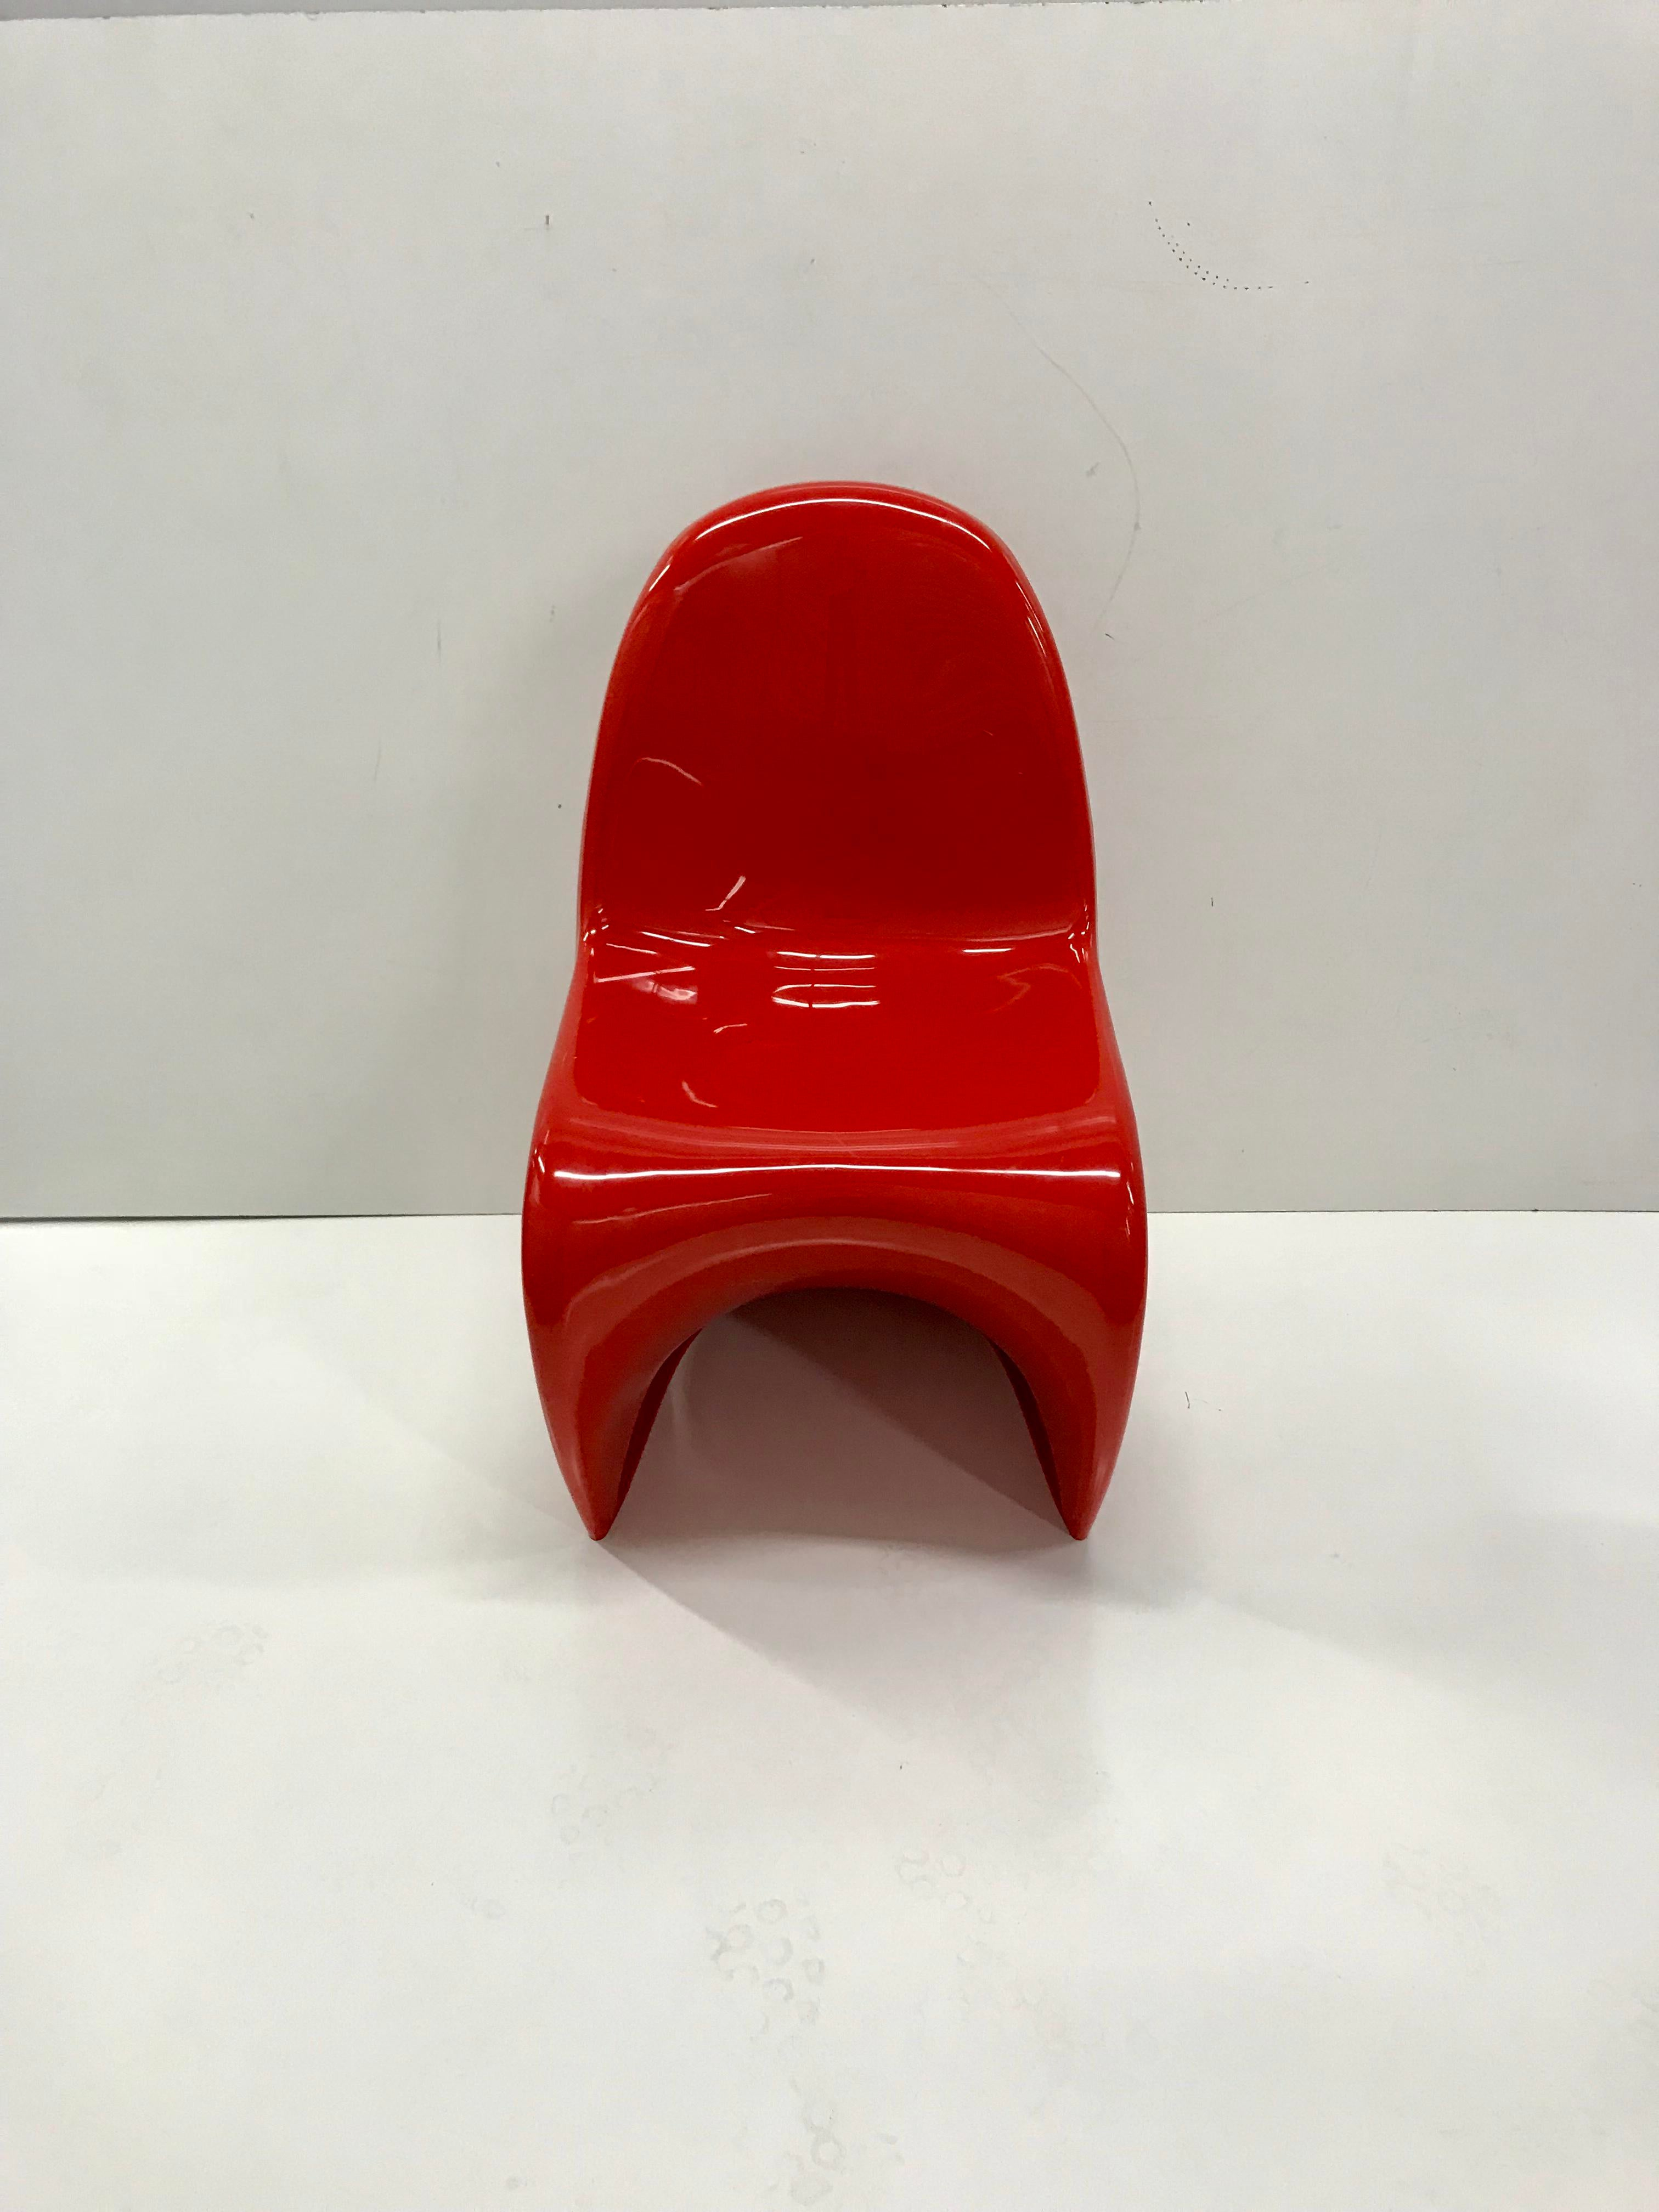 Lipstick Red Molded Plastic Chair In Classic U201cSu201d Style Of Verner Panton  Seat Height